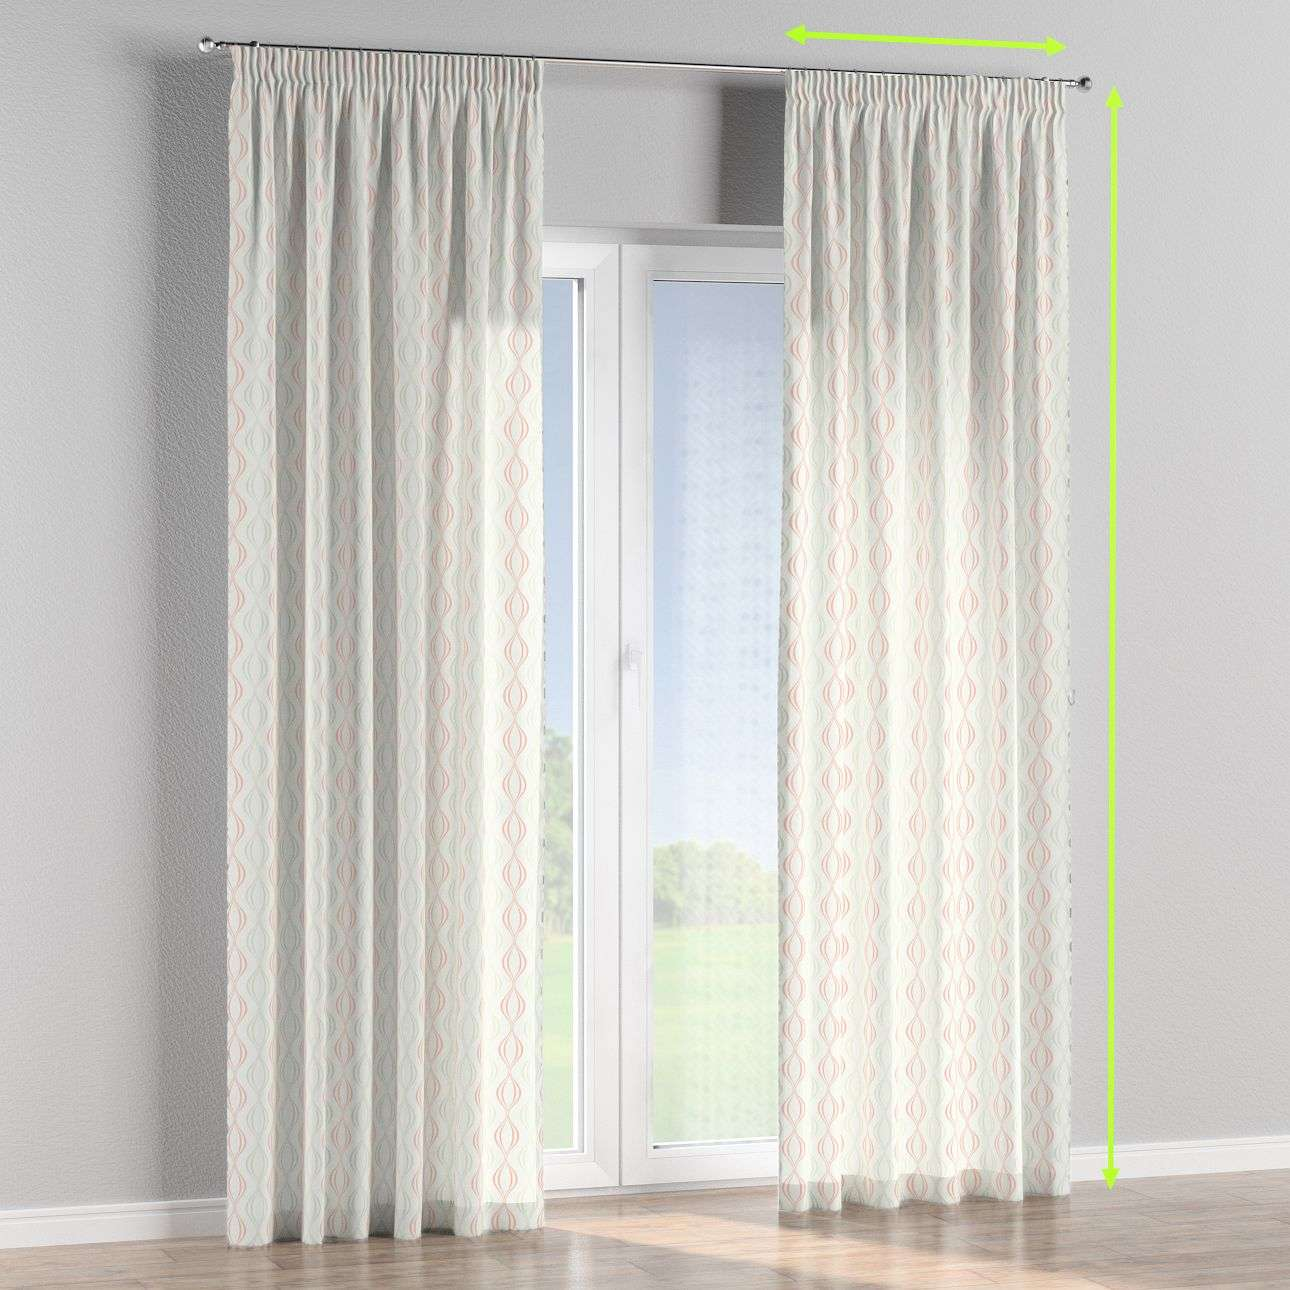 Pencil pleat lined curtains in collection Geometric, fabric: 141-49